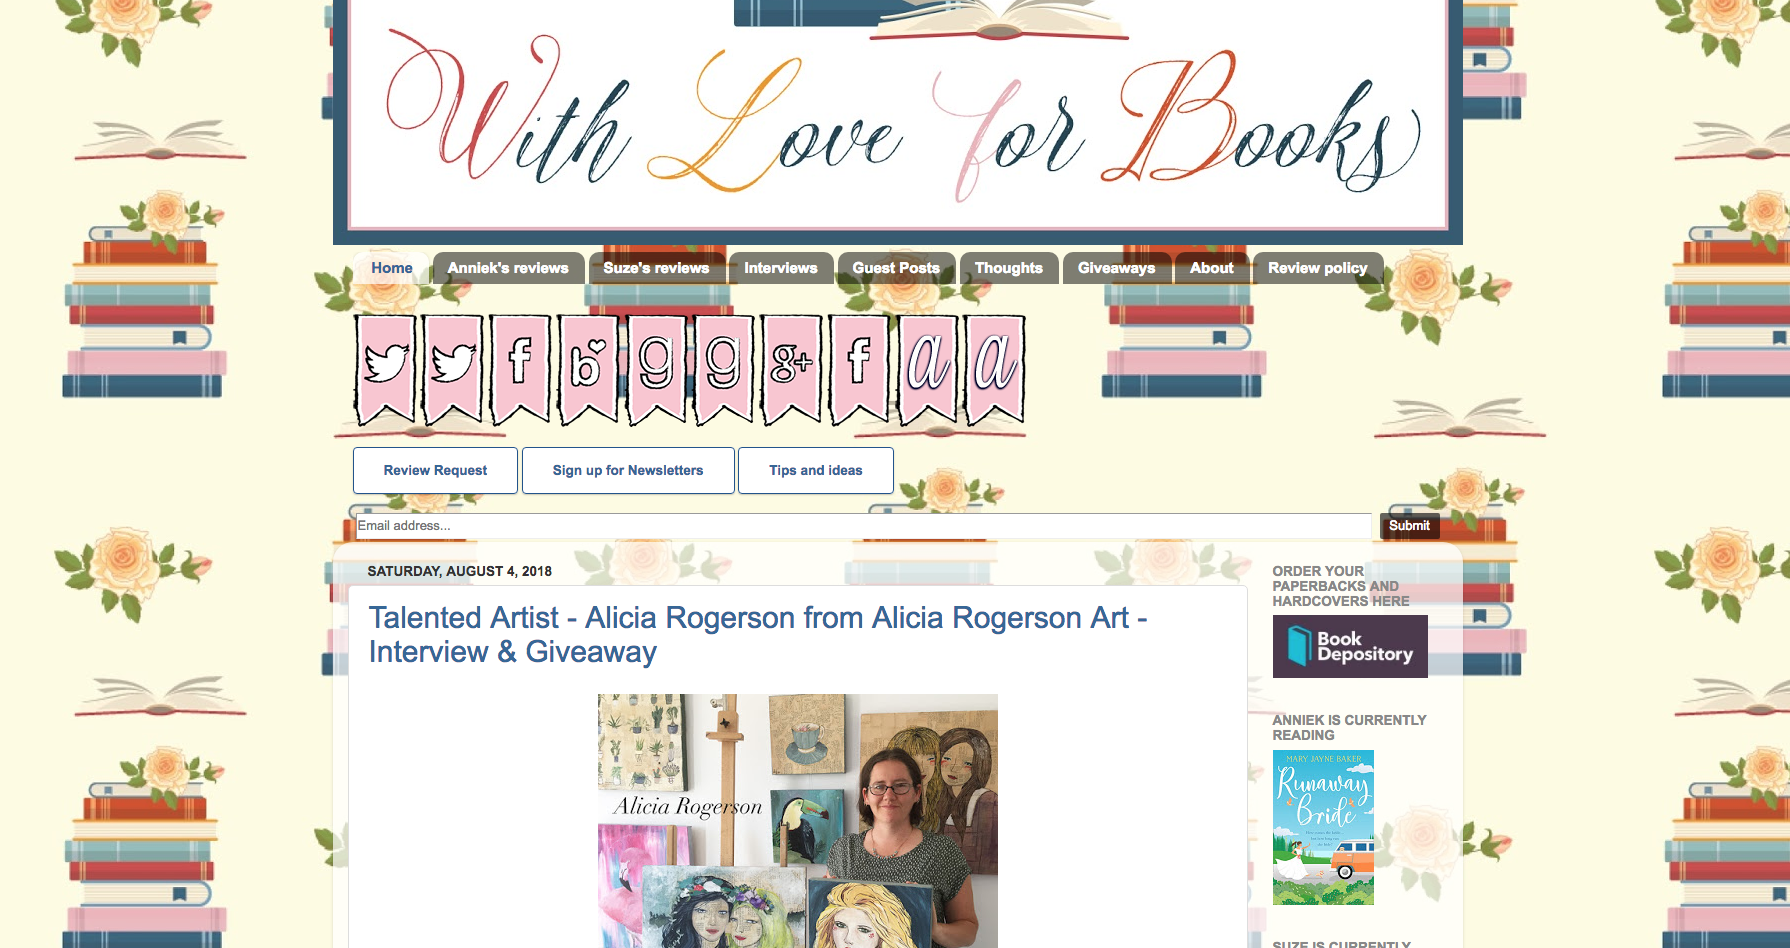 With Love For Books Giveaway